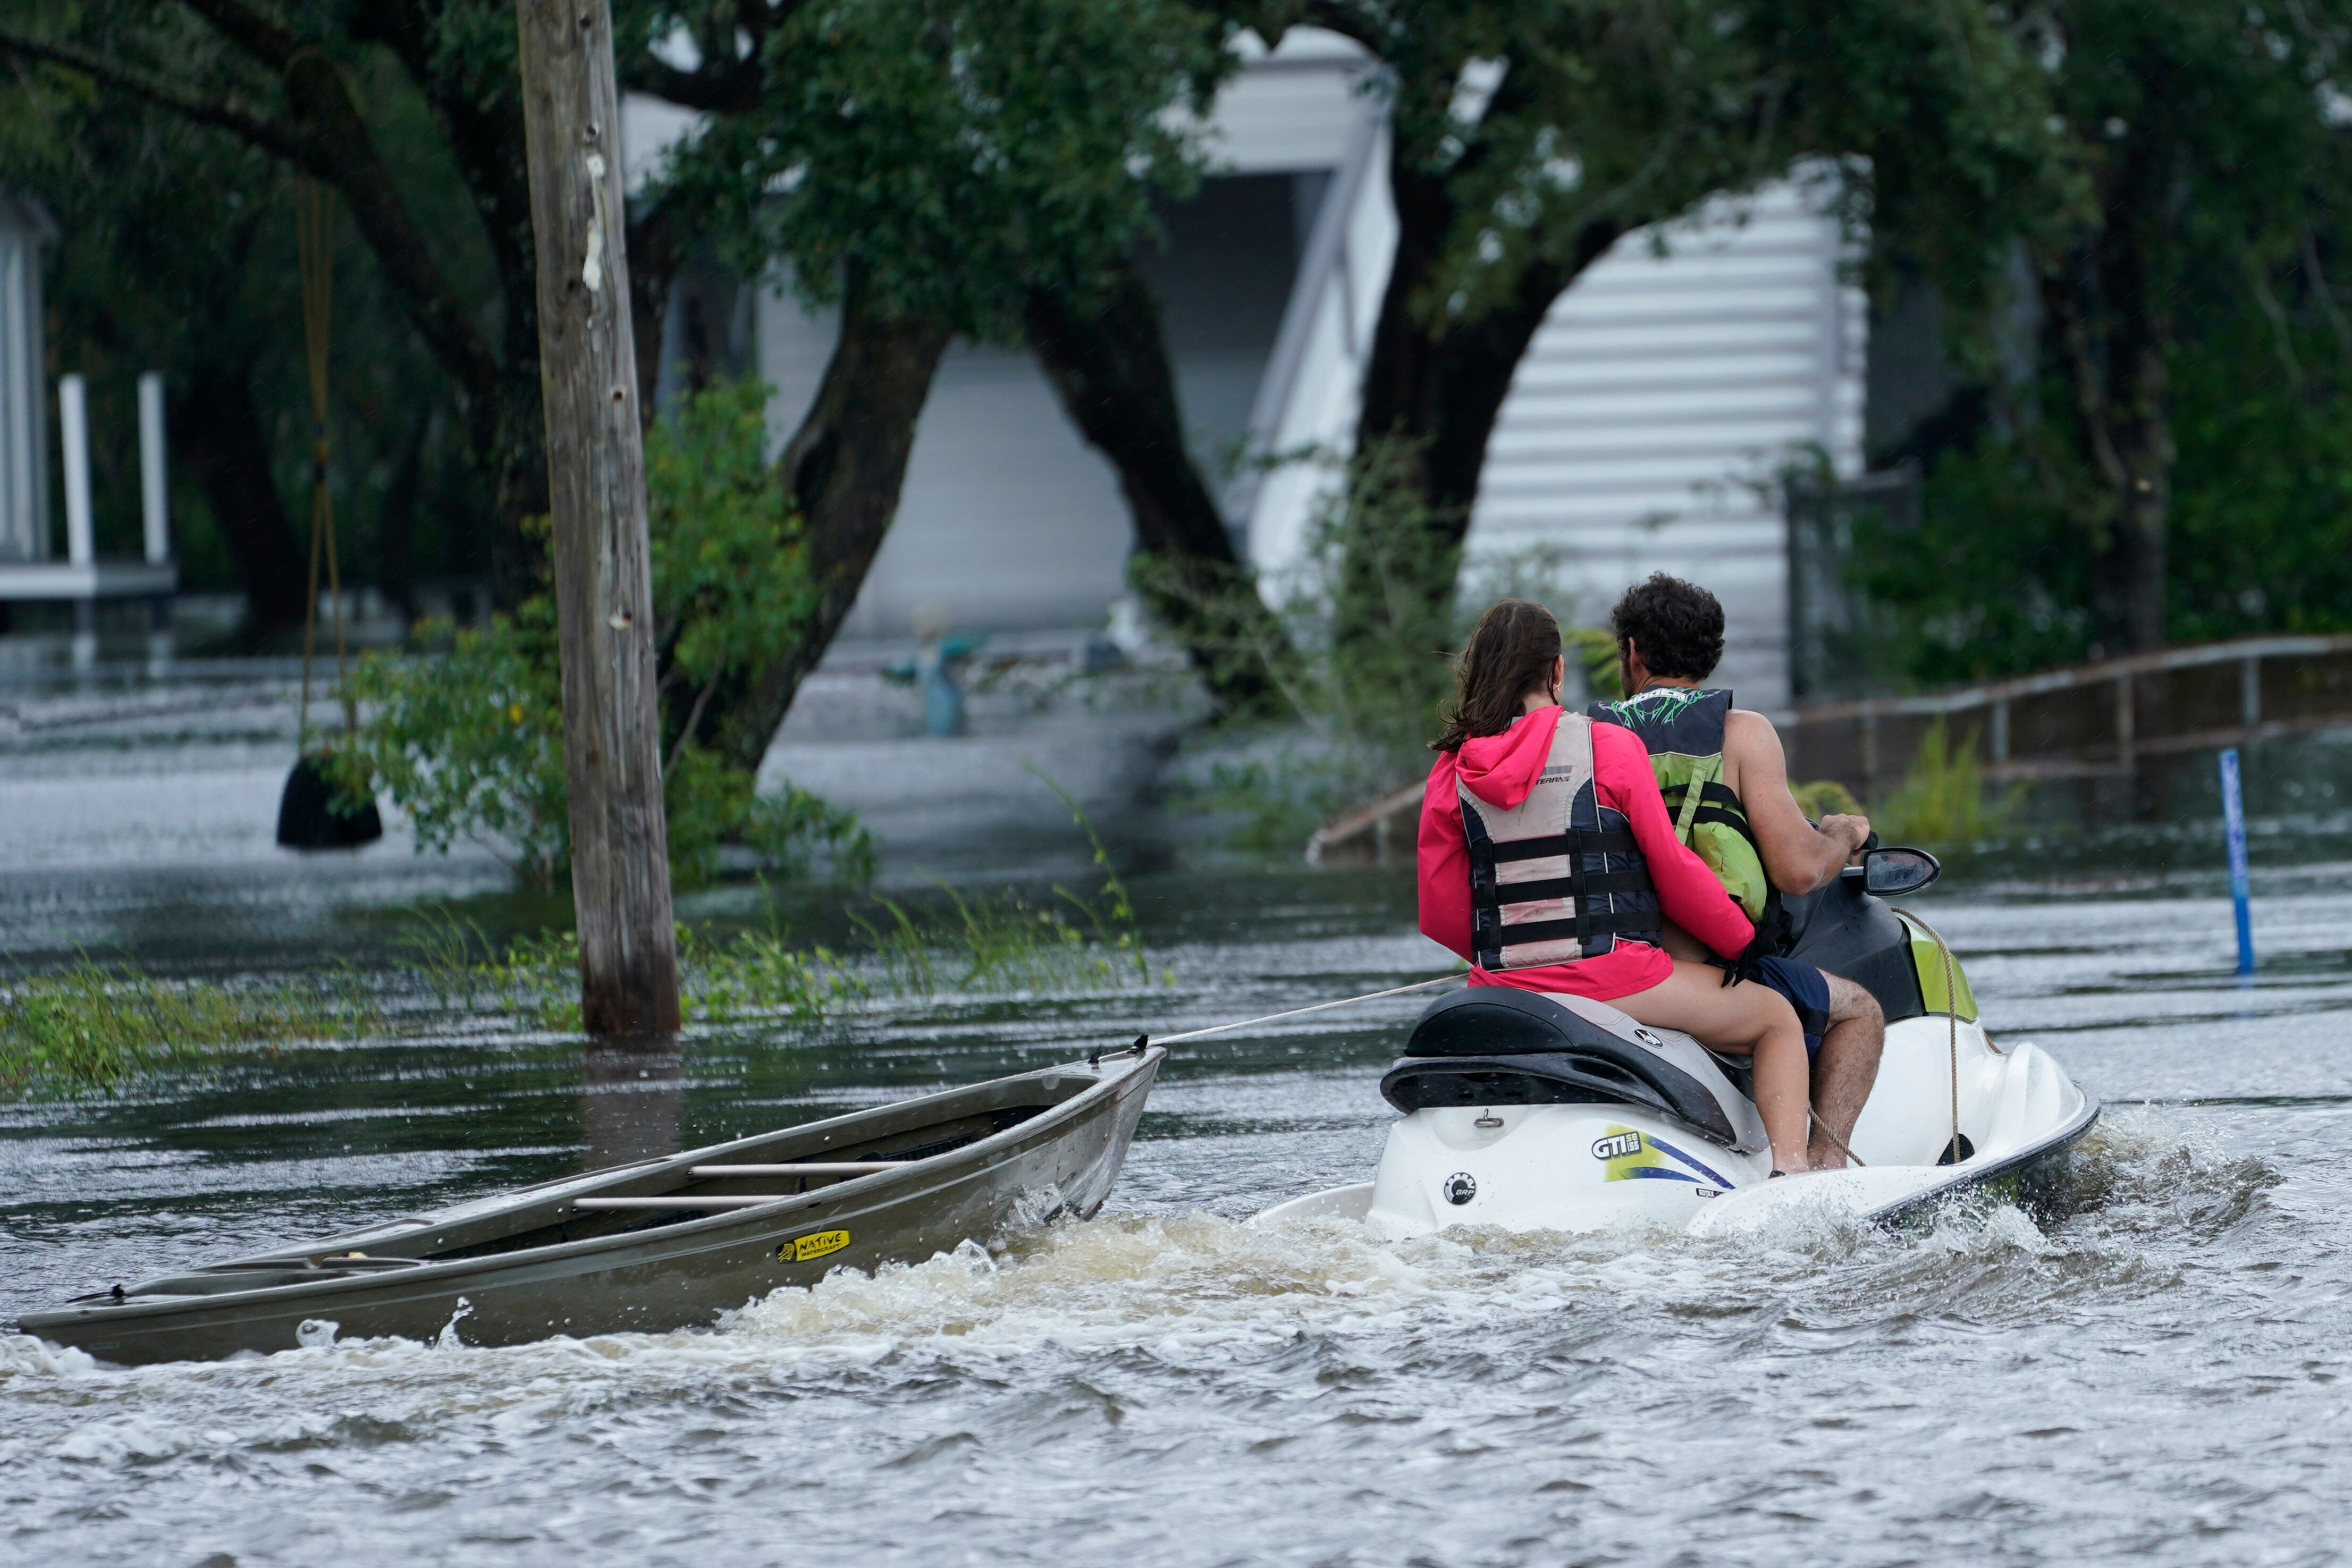 A local resident on a jet ski tows a canoe to a flooded house as outer bands of Hurricane Ida arrive on Sunday in Bay Saint L